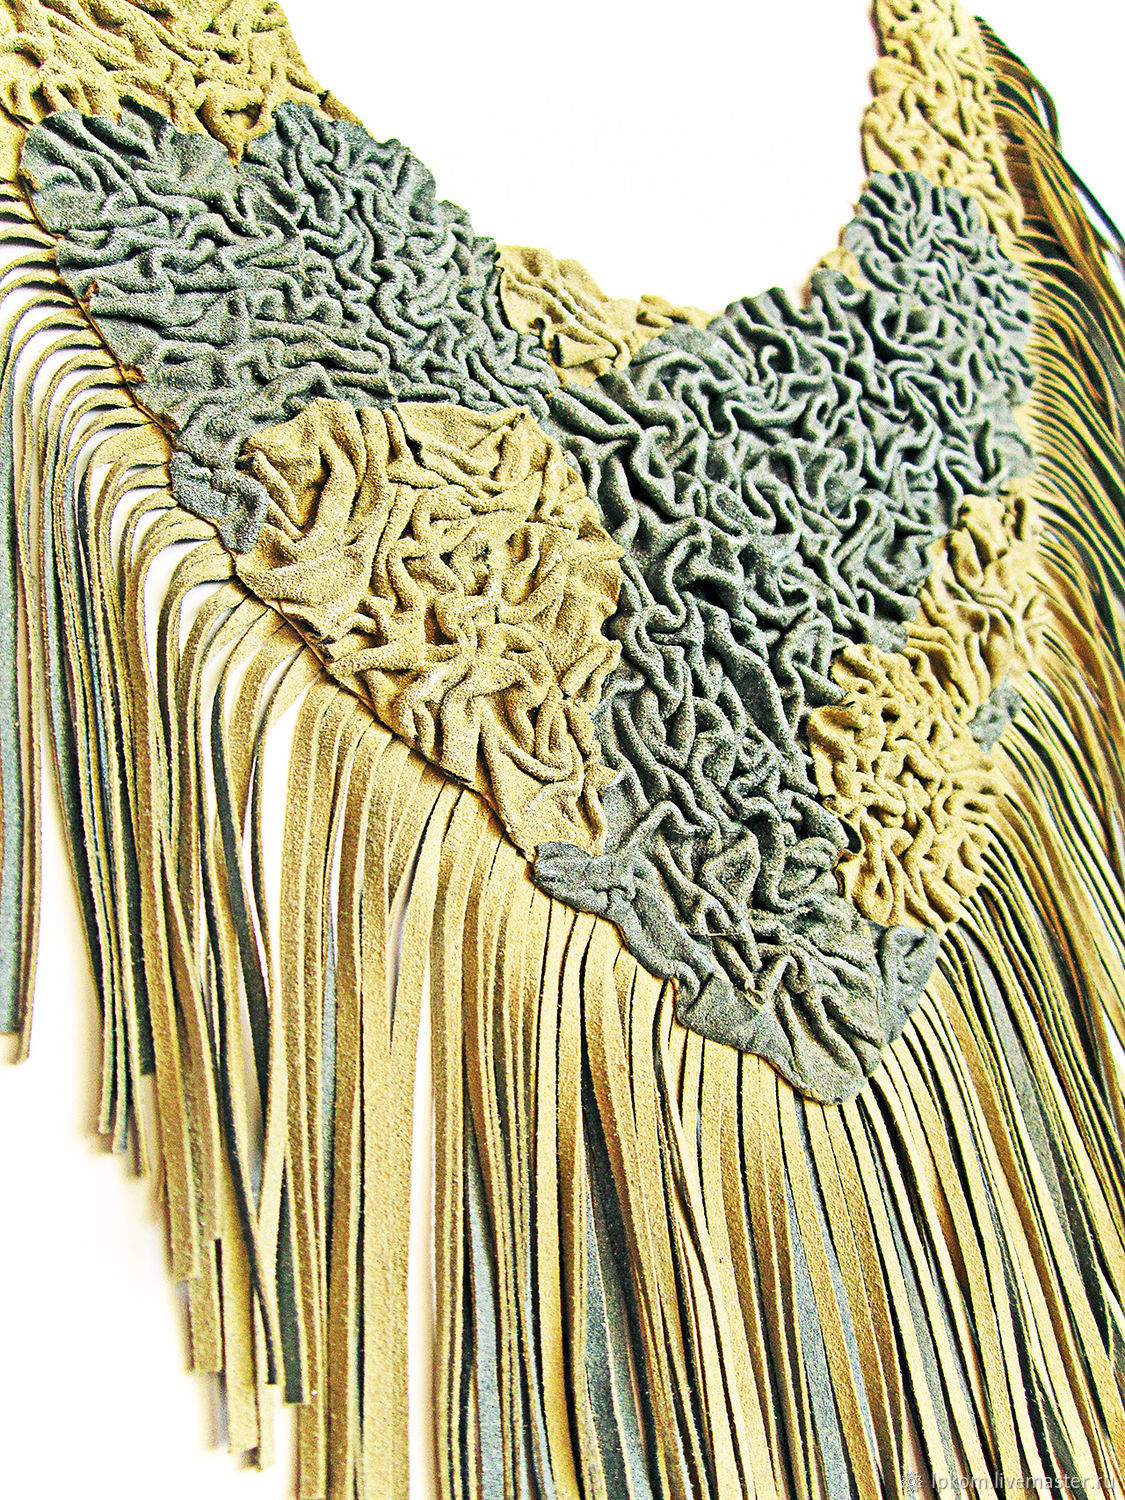 Necklace from genuine leather with fringe and gmurray, Necklace, St. Petersburg,  Фото №1